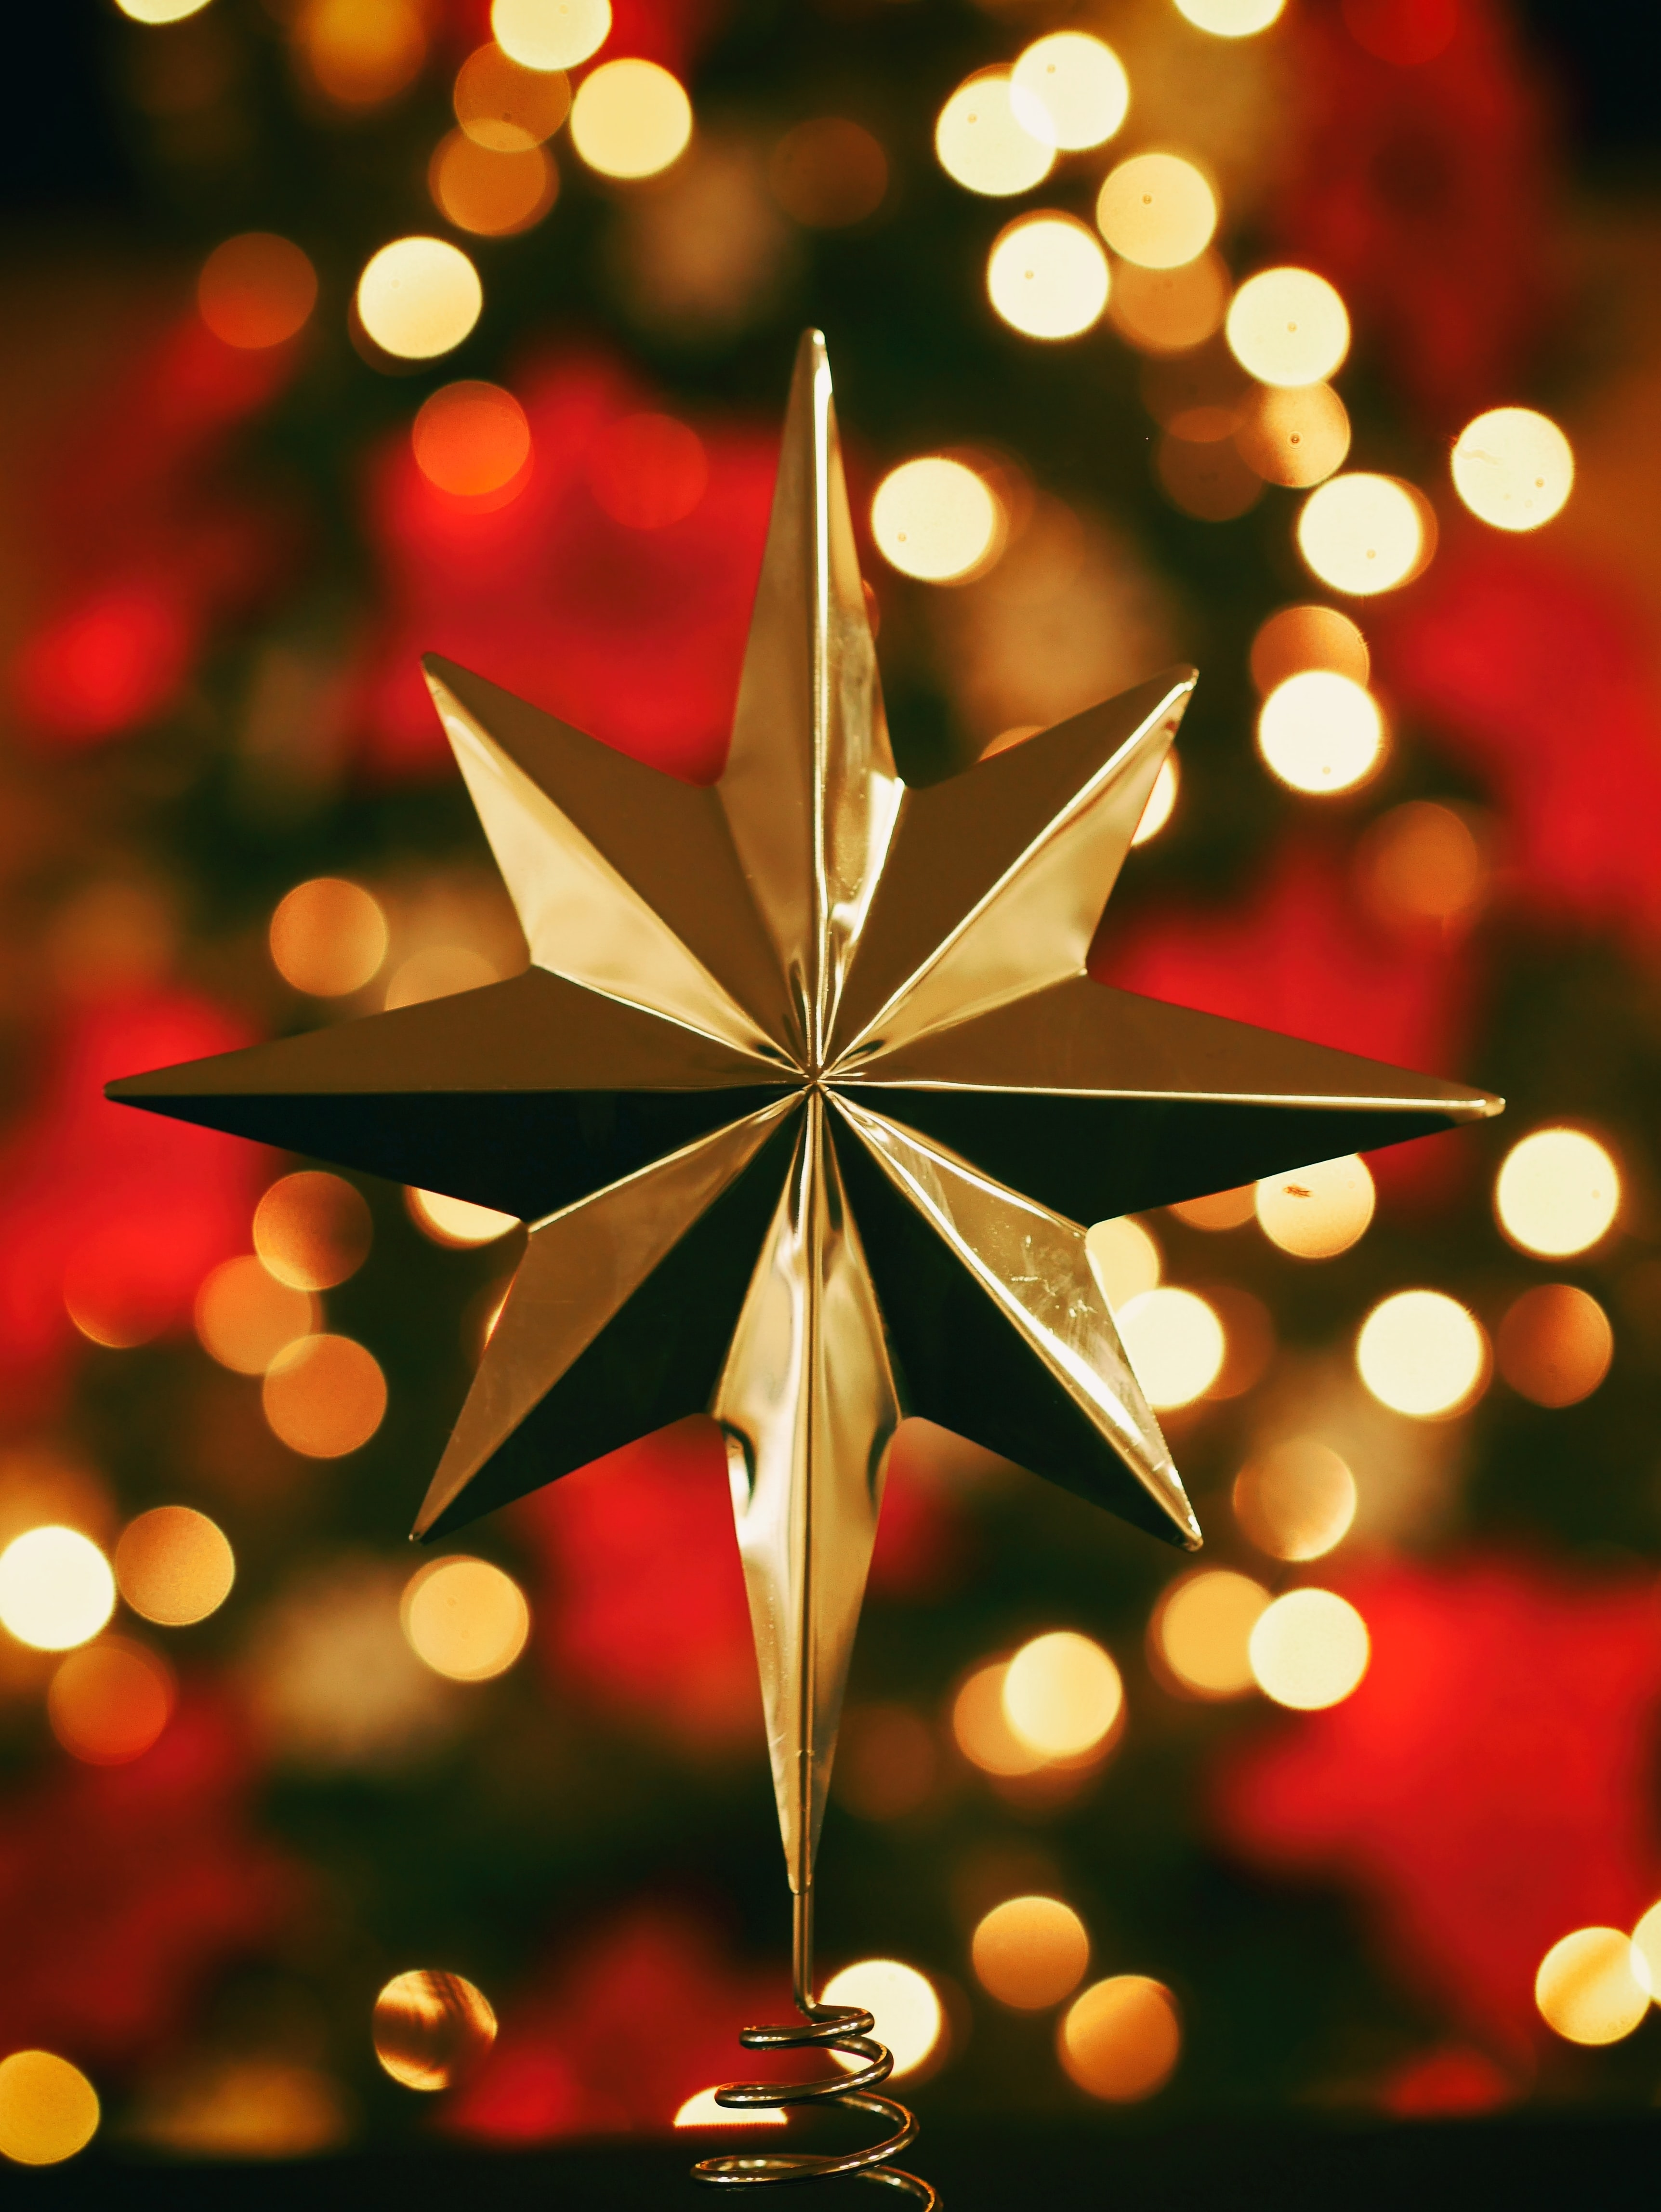 bokeh photography of gold star tree topper